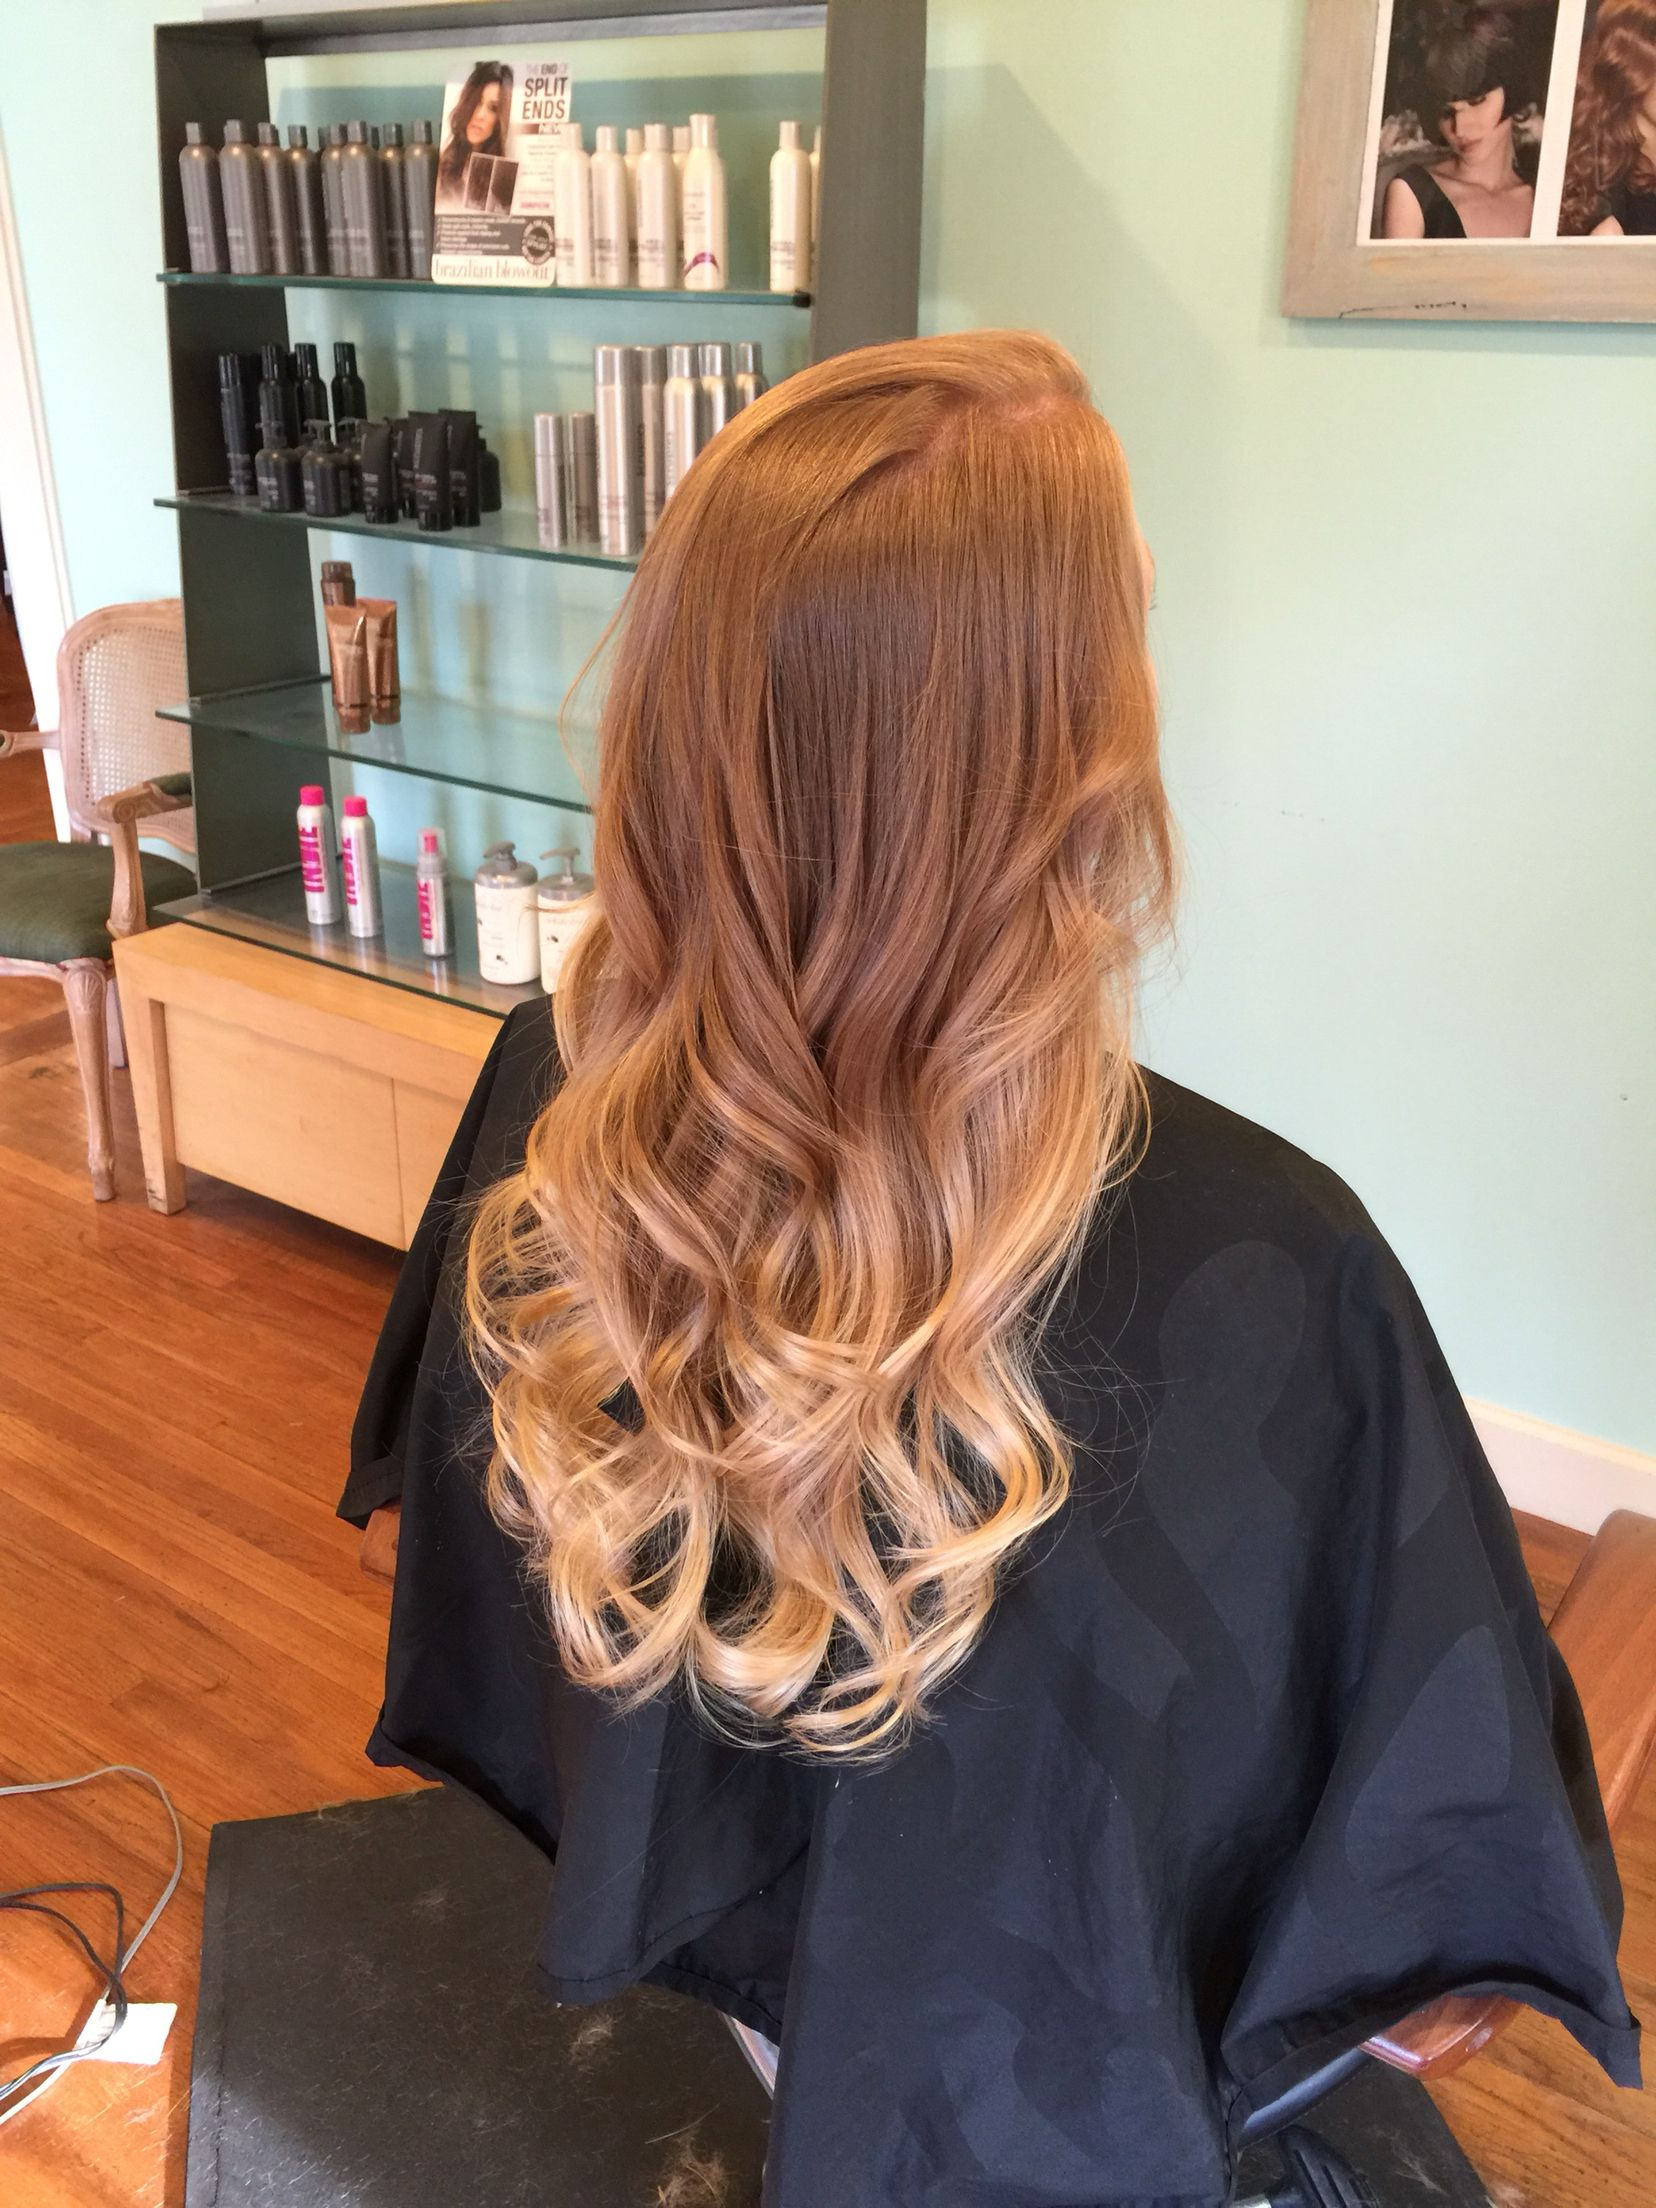 Pin By Sarah Durso On Tress Code Strawberry Blonde Hair Ombre